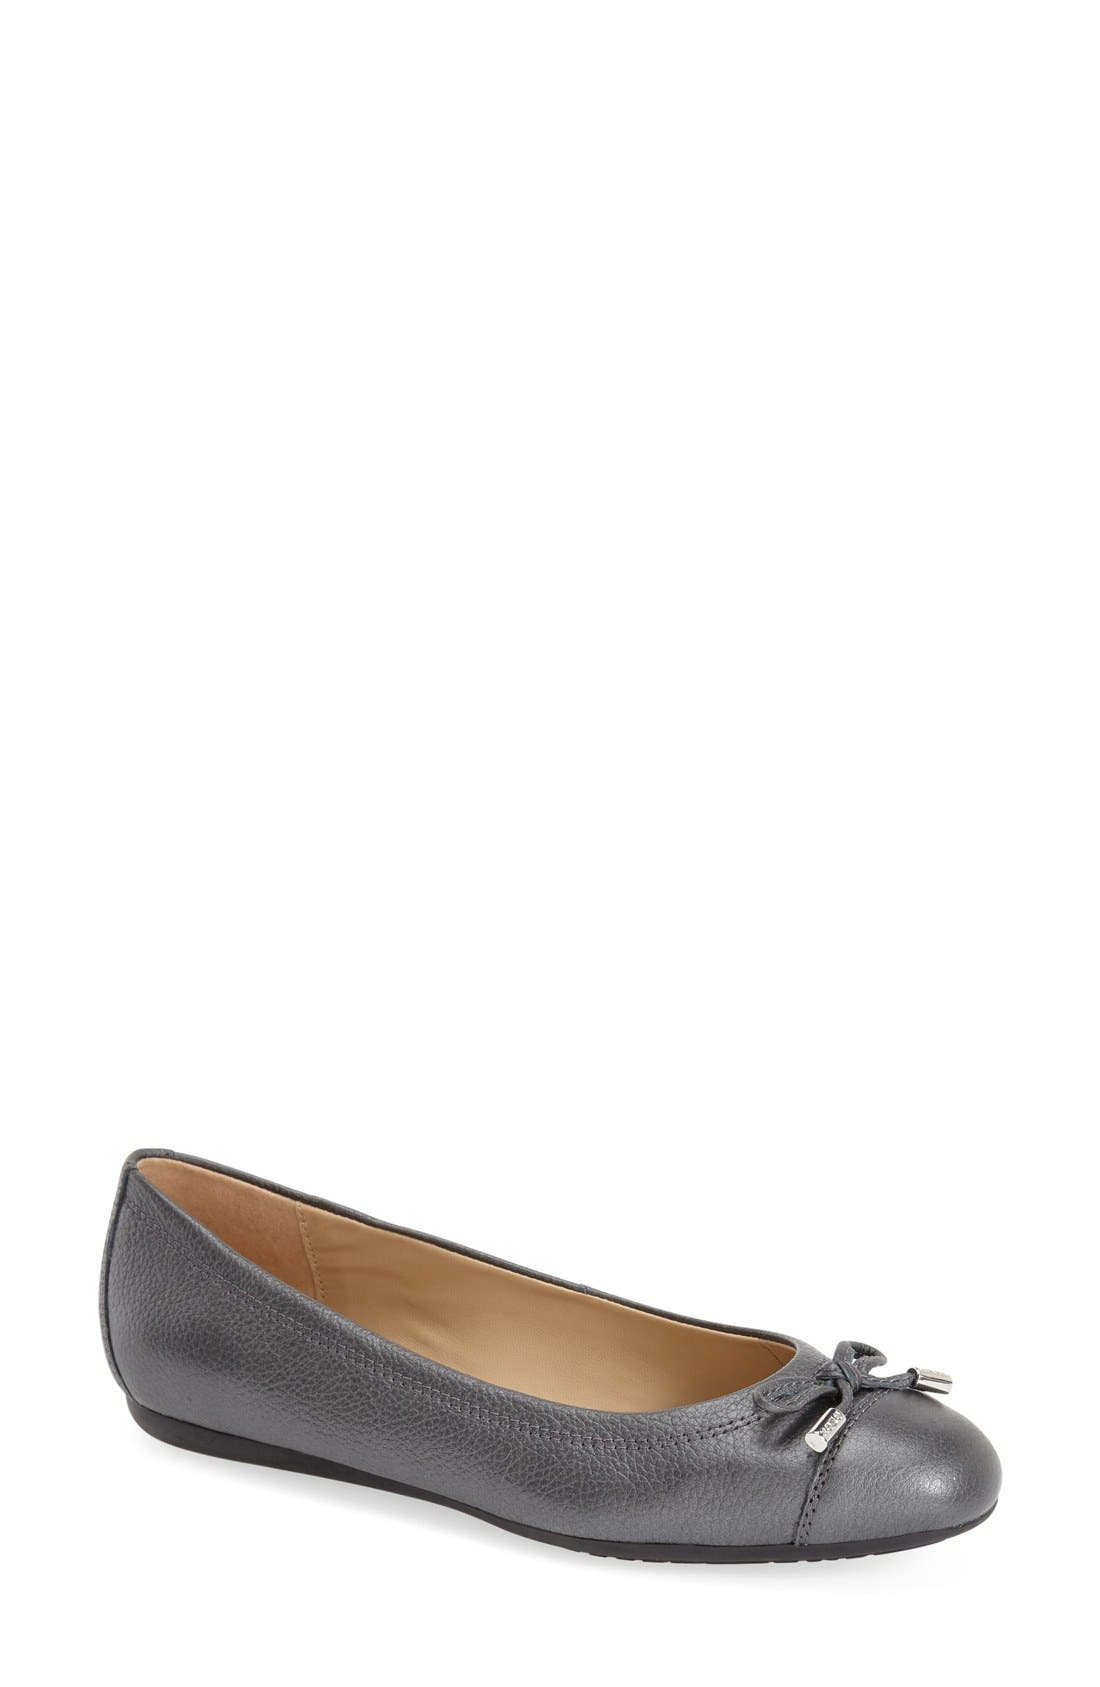 'Lola 16' Cap Toe Ballet Flat,                             Main thumbnail 2, color,